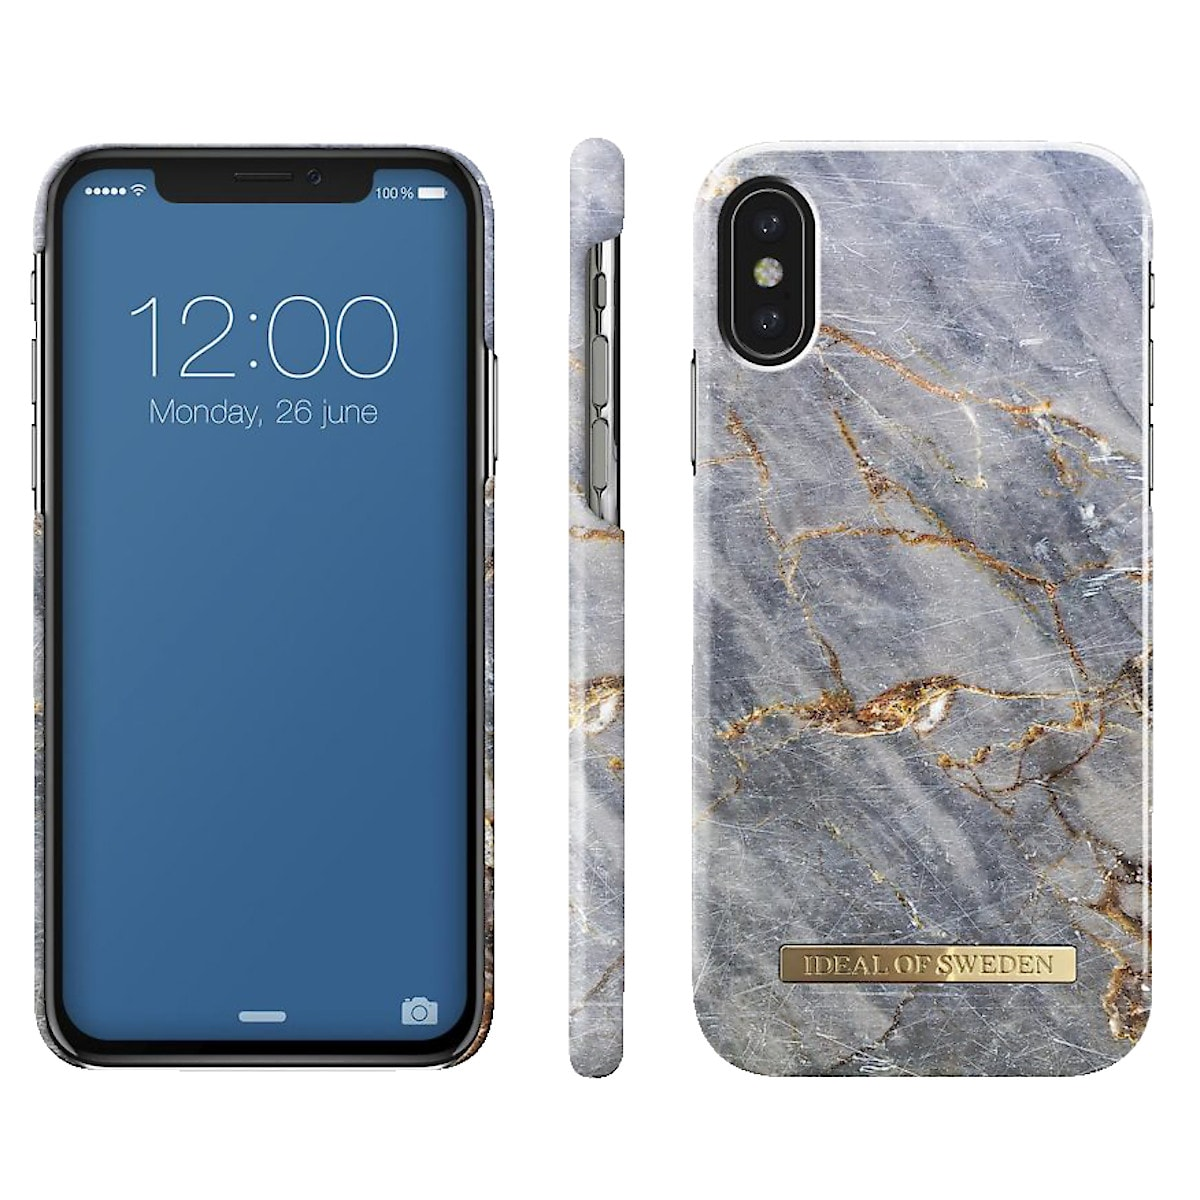 iDeal of Sweden Mobile Case for iPhone X/XS